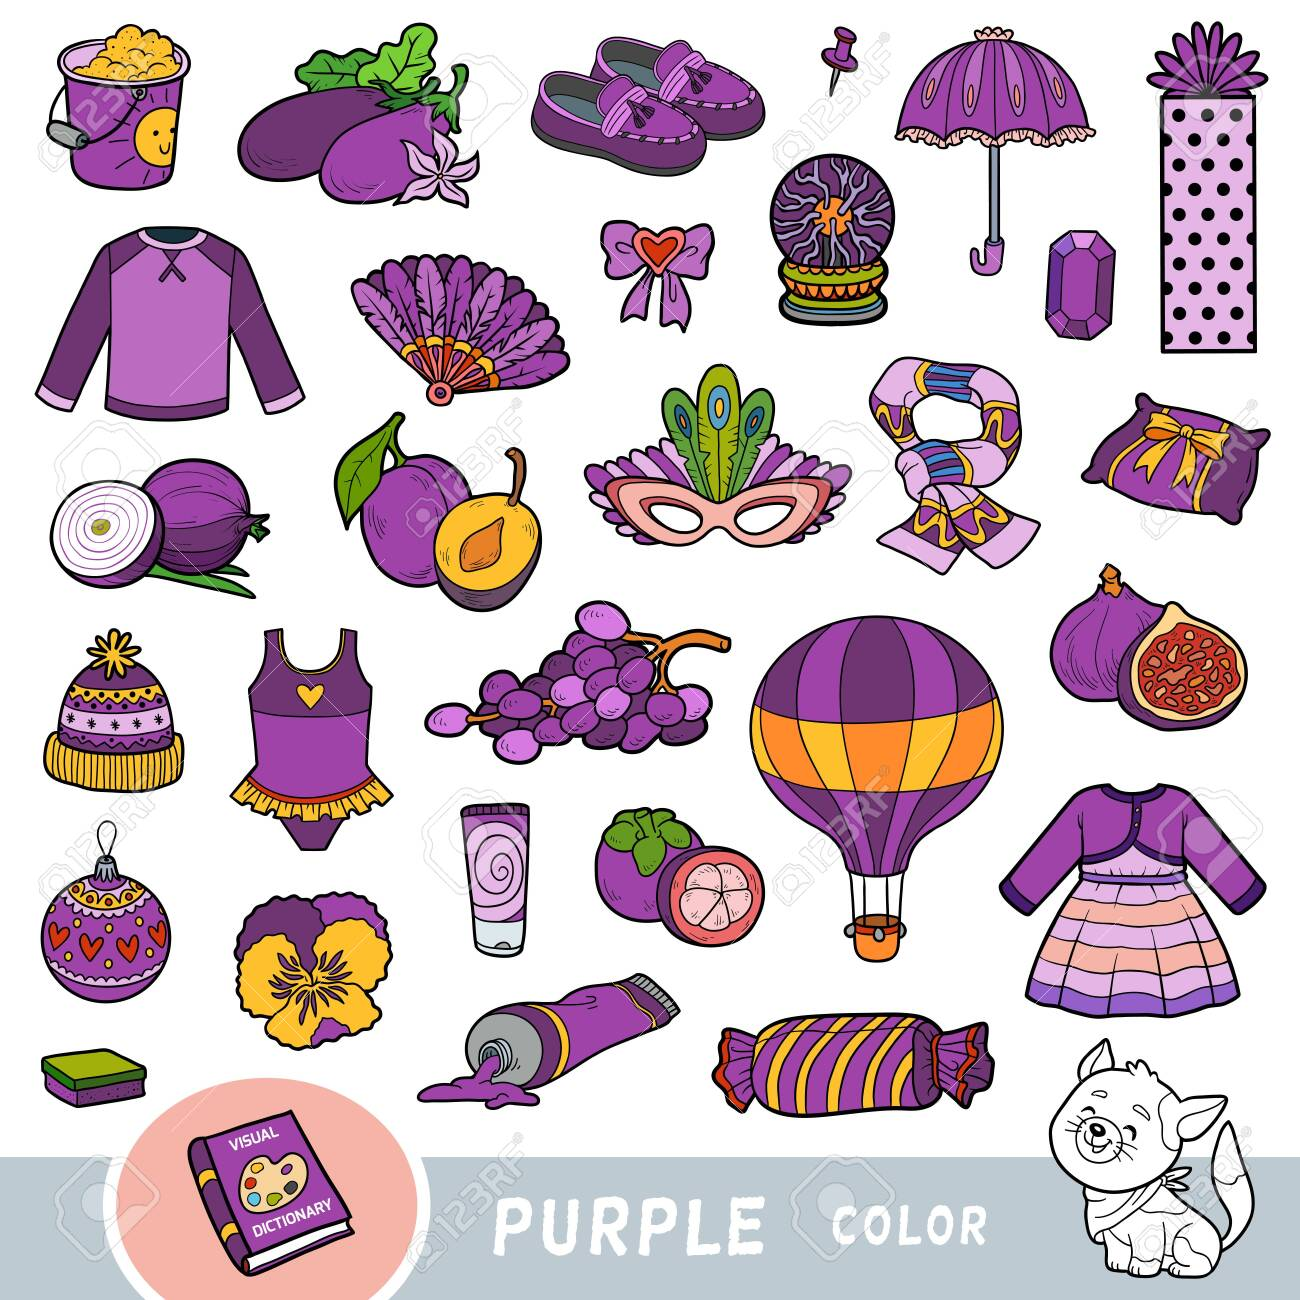 Colorful set of purple color objects. Visual dictionary for children about the basic colors. Cartoon images to learning in kindergarten and preschool - 136781270